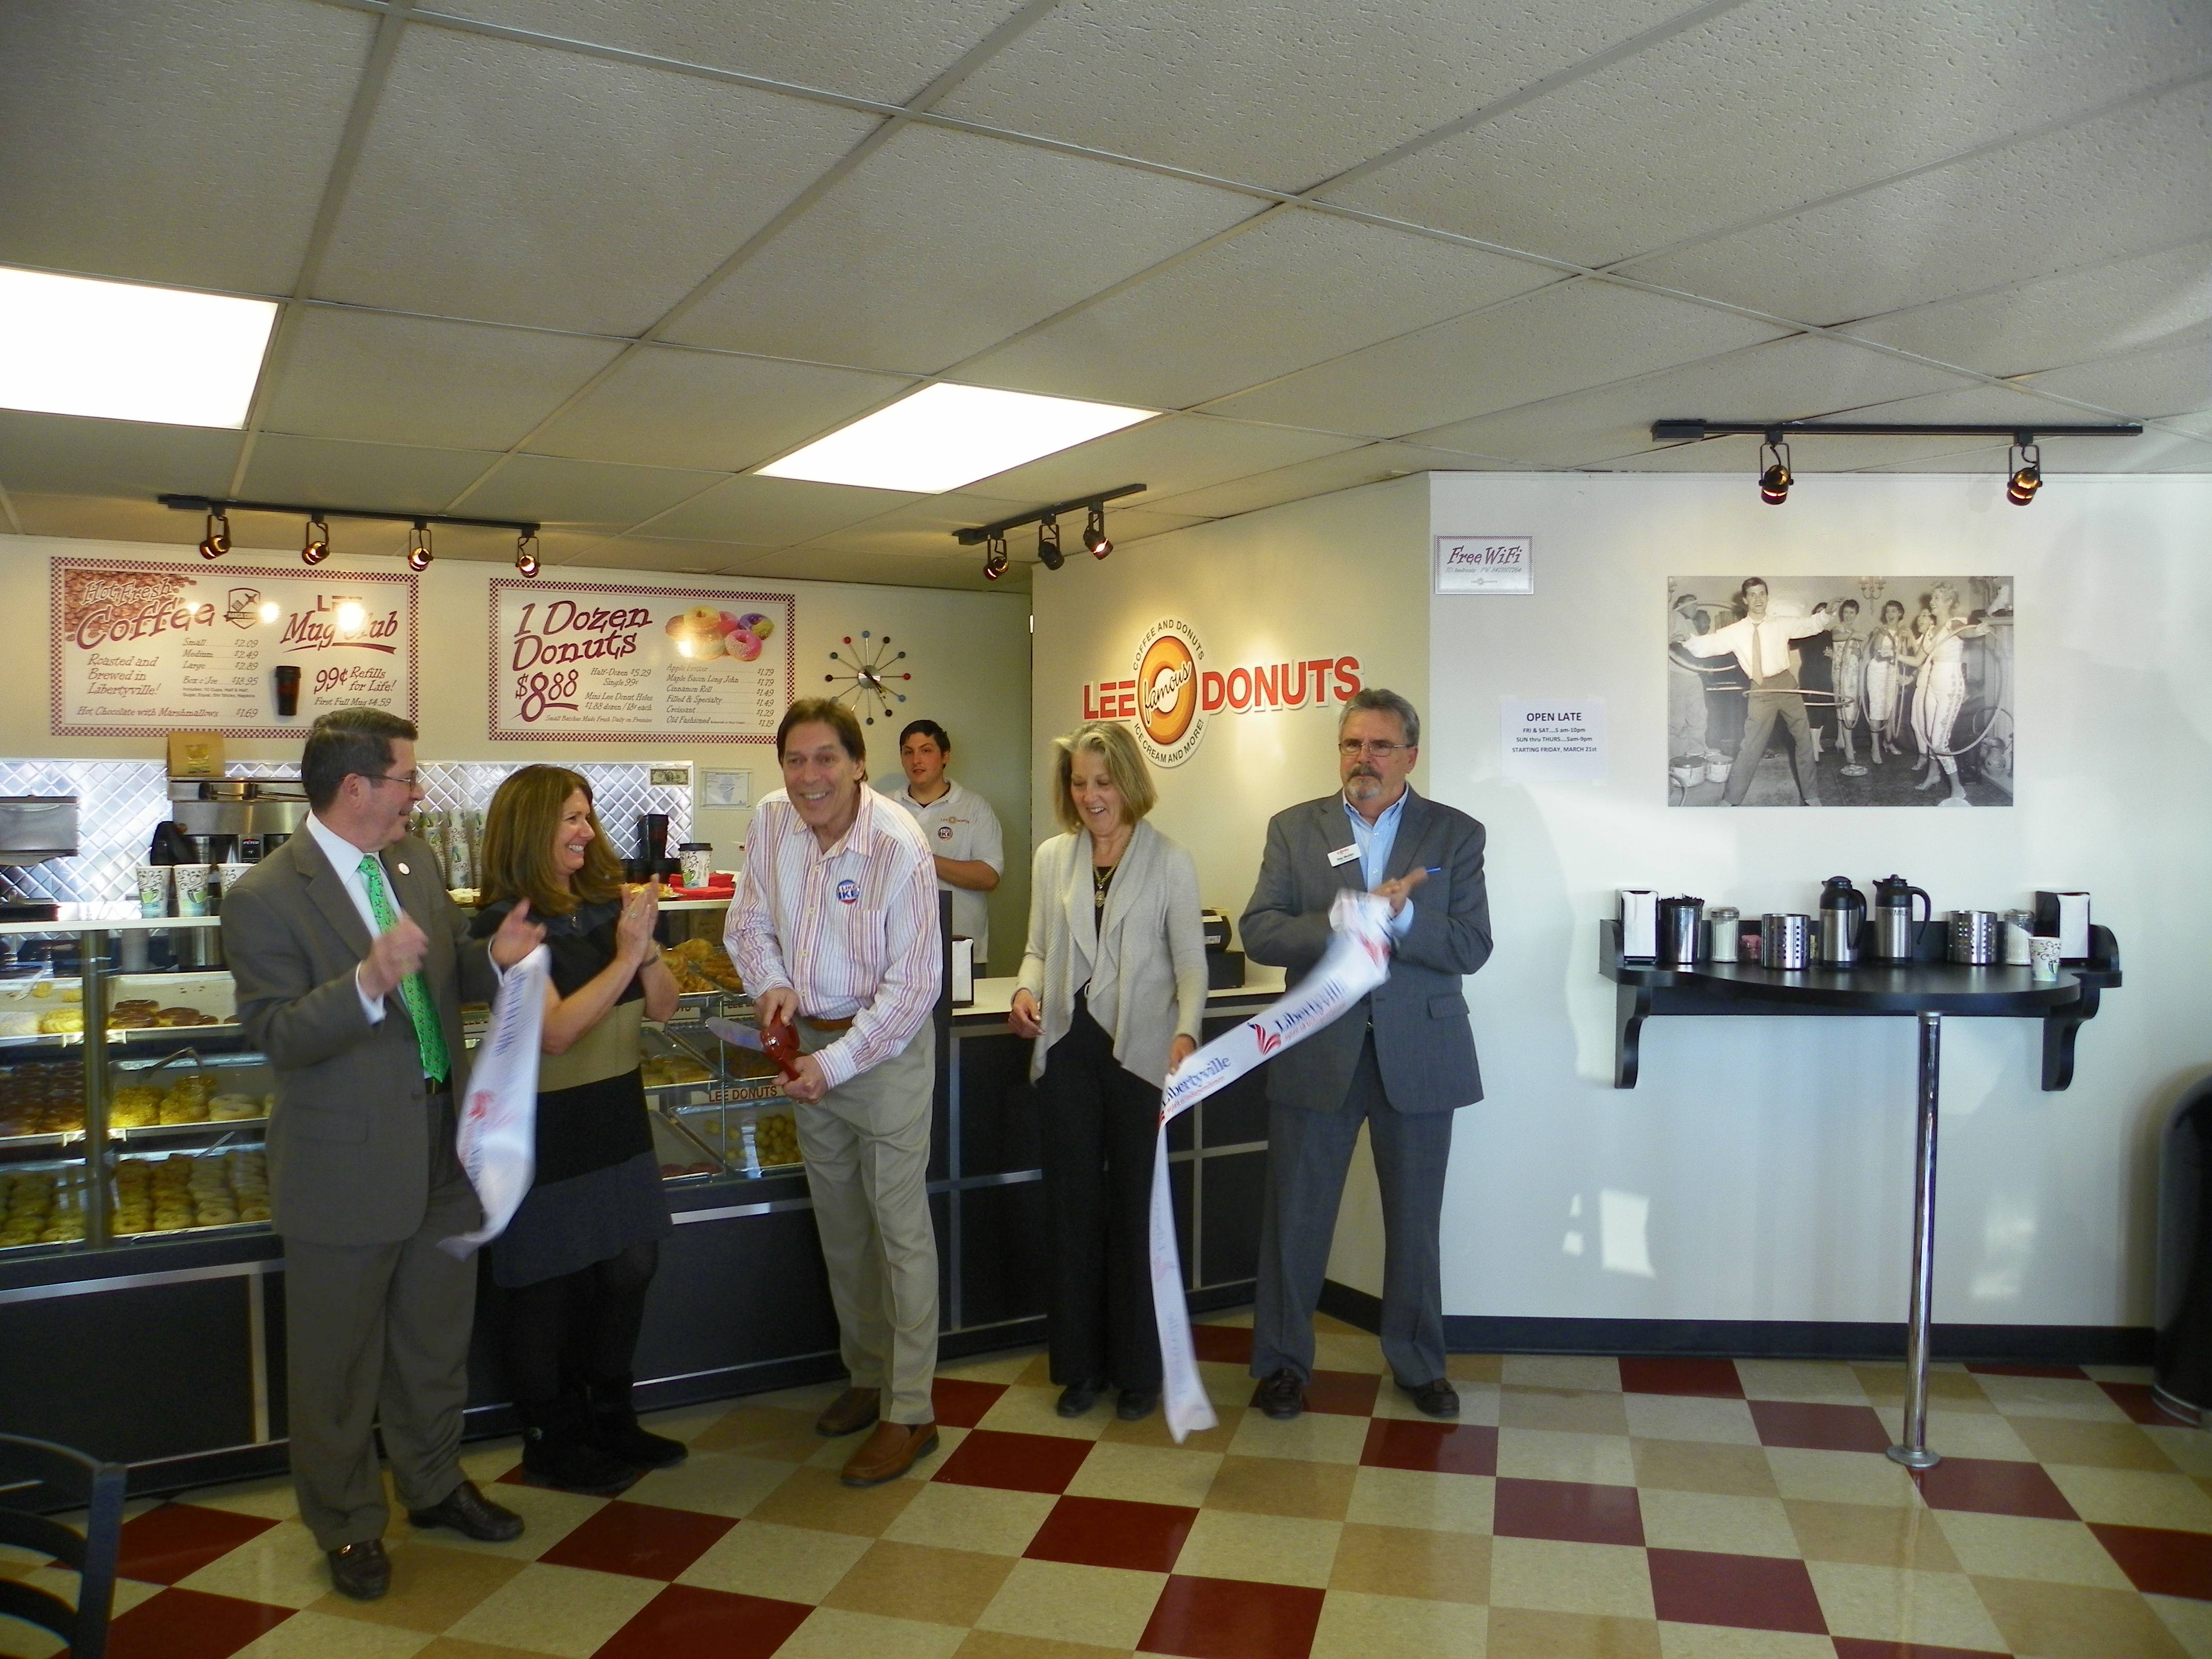 Bill Kaiser, new owner of LEE Famous Donuts cuts the ribbon with (Left to Right) Mayor Terry Weppler, Francine Kaiser (Bill's Wife), Pam Hume (Executive Director of MainStreet Libertyville) and Ray Mullen (Executive Director GLMV Chamber of Commerce) looking on.Bill Kaiser